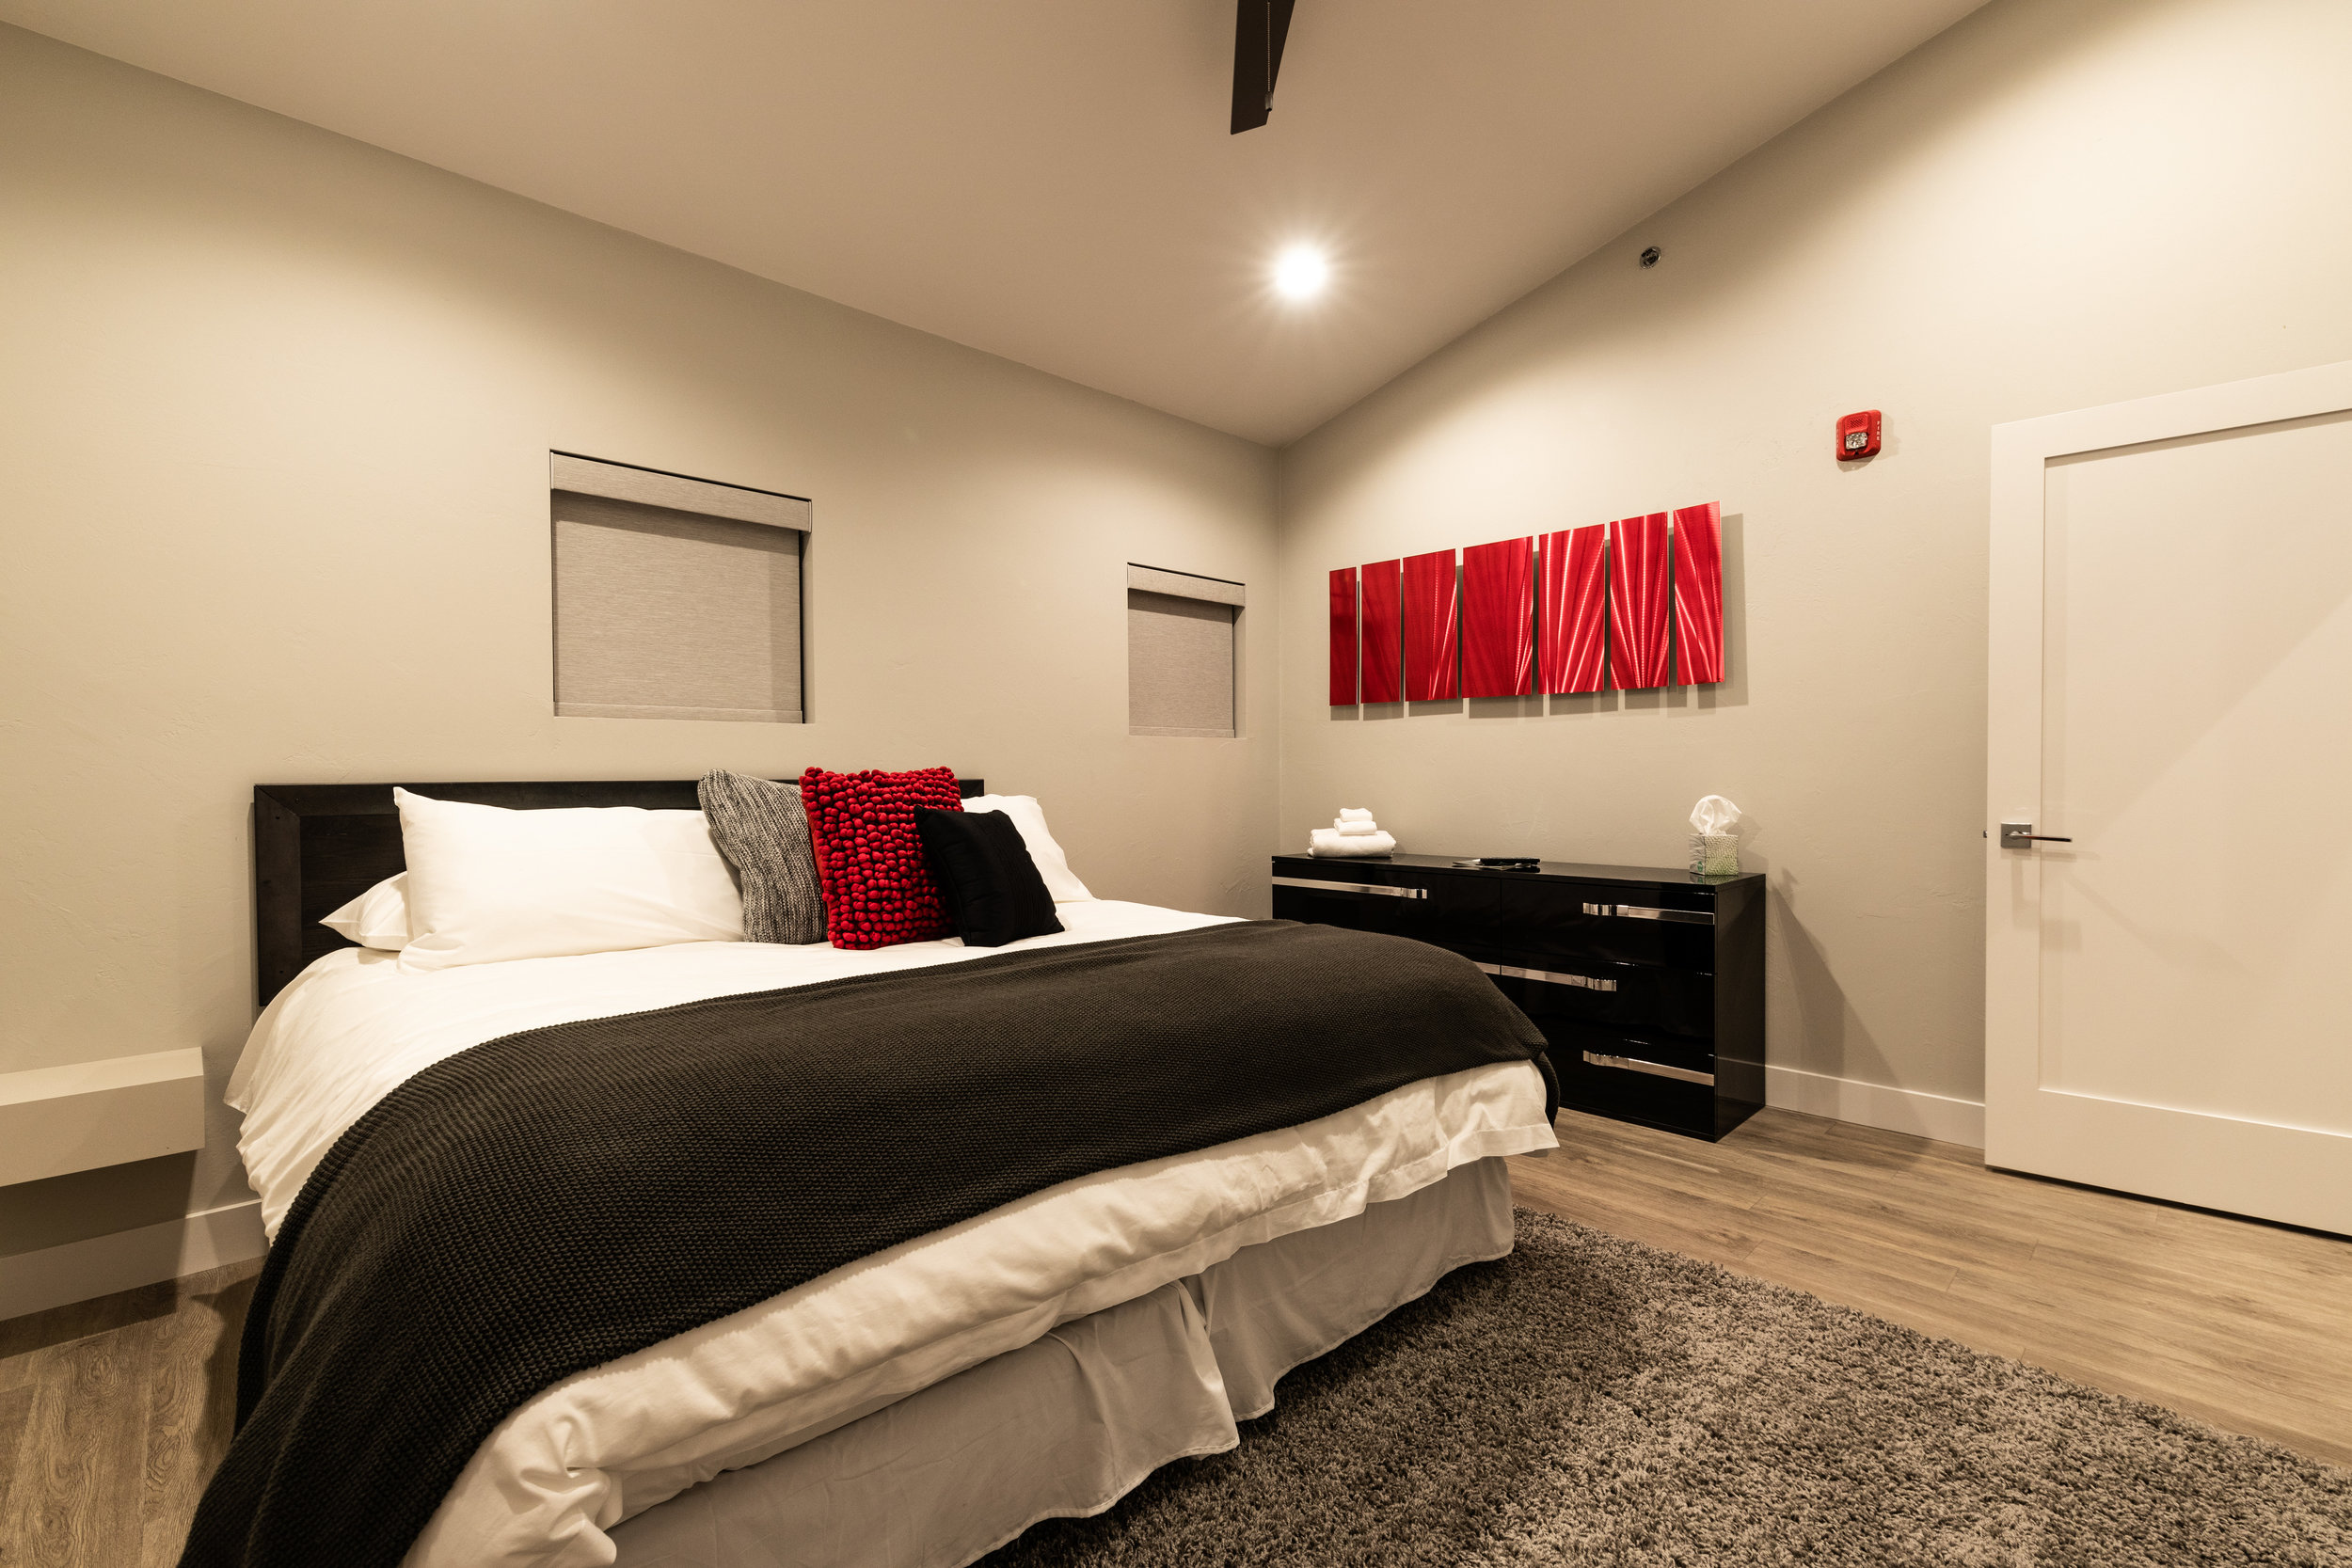 Monte Carlo's guest bedroom in radiant red is just the space your guests want.